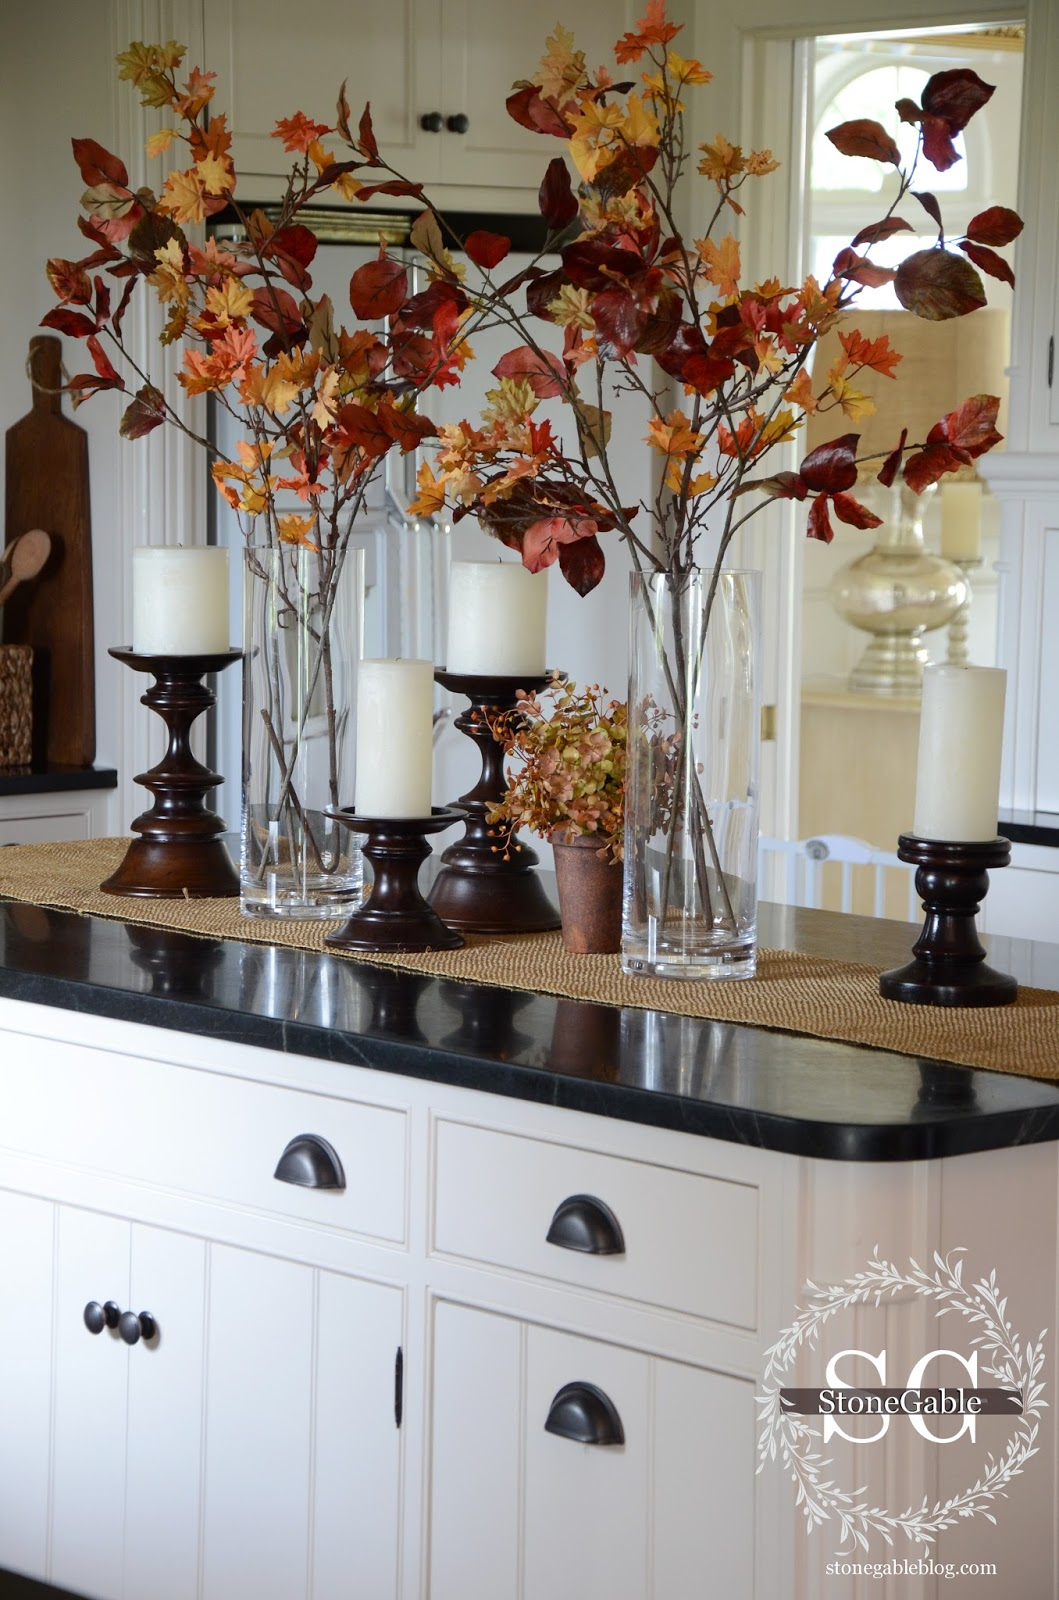 My Home Decor Guide: ALL ABOUT THE DETAILS KITCHEN HOME TOUR